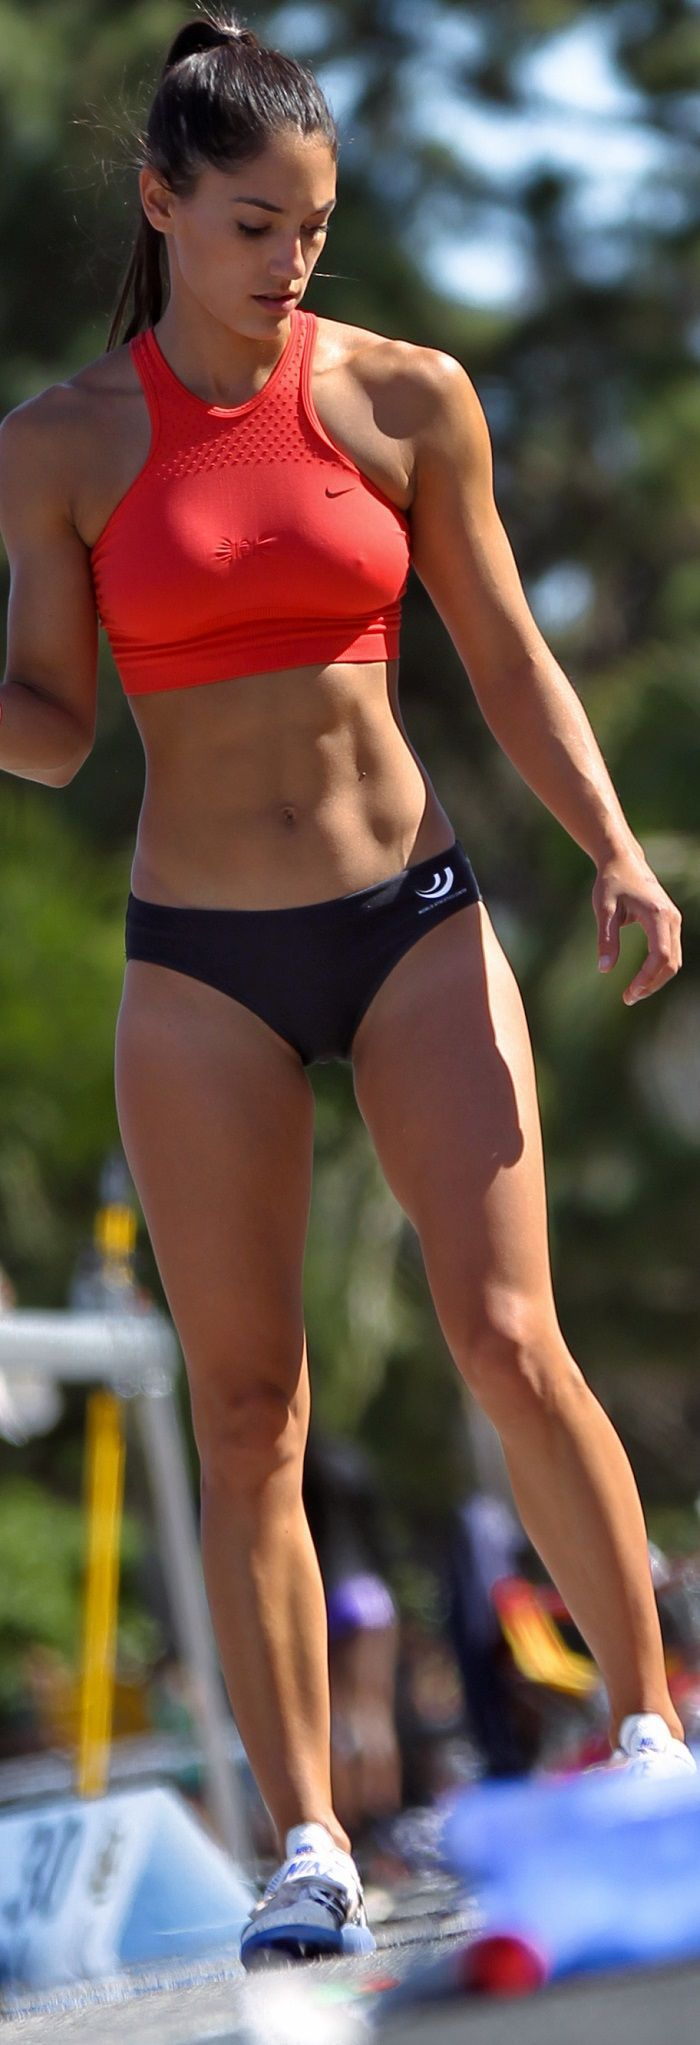 Allison Stokke  C - Cute Girls  Fitness, Fit Women -6463